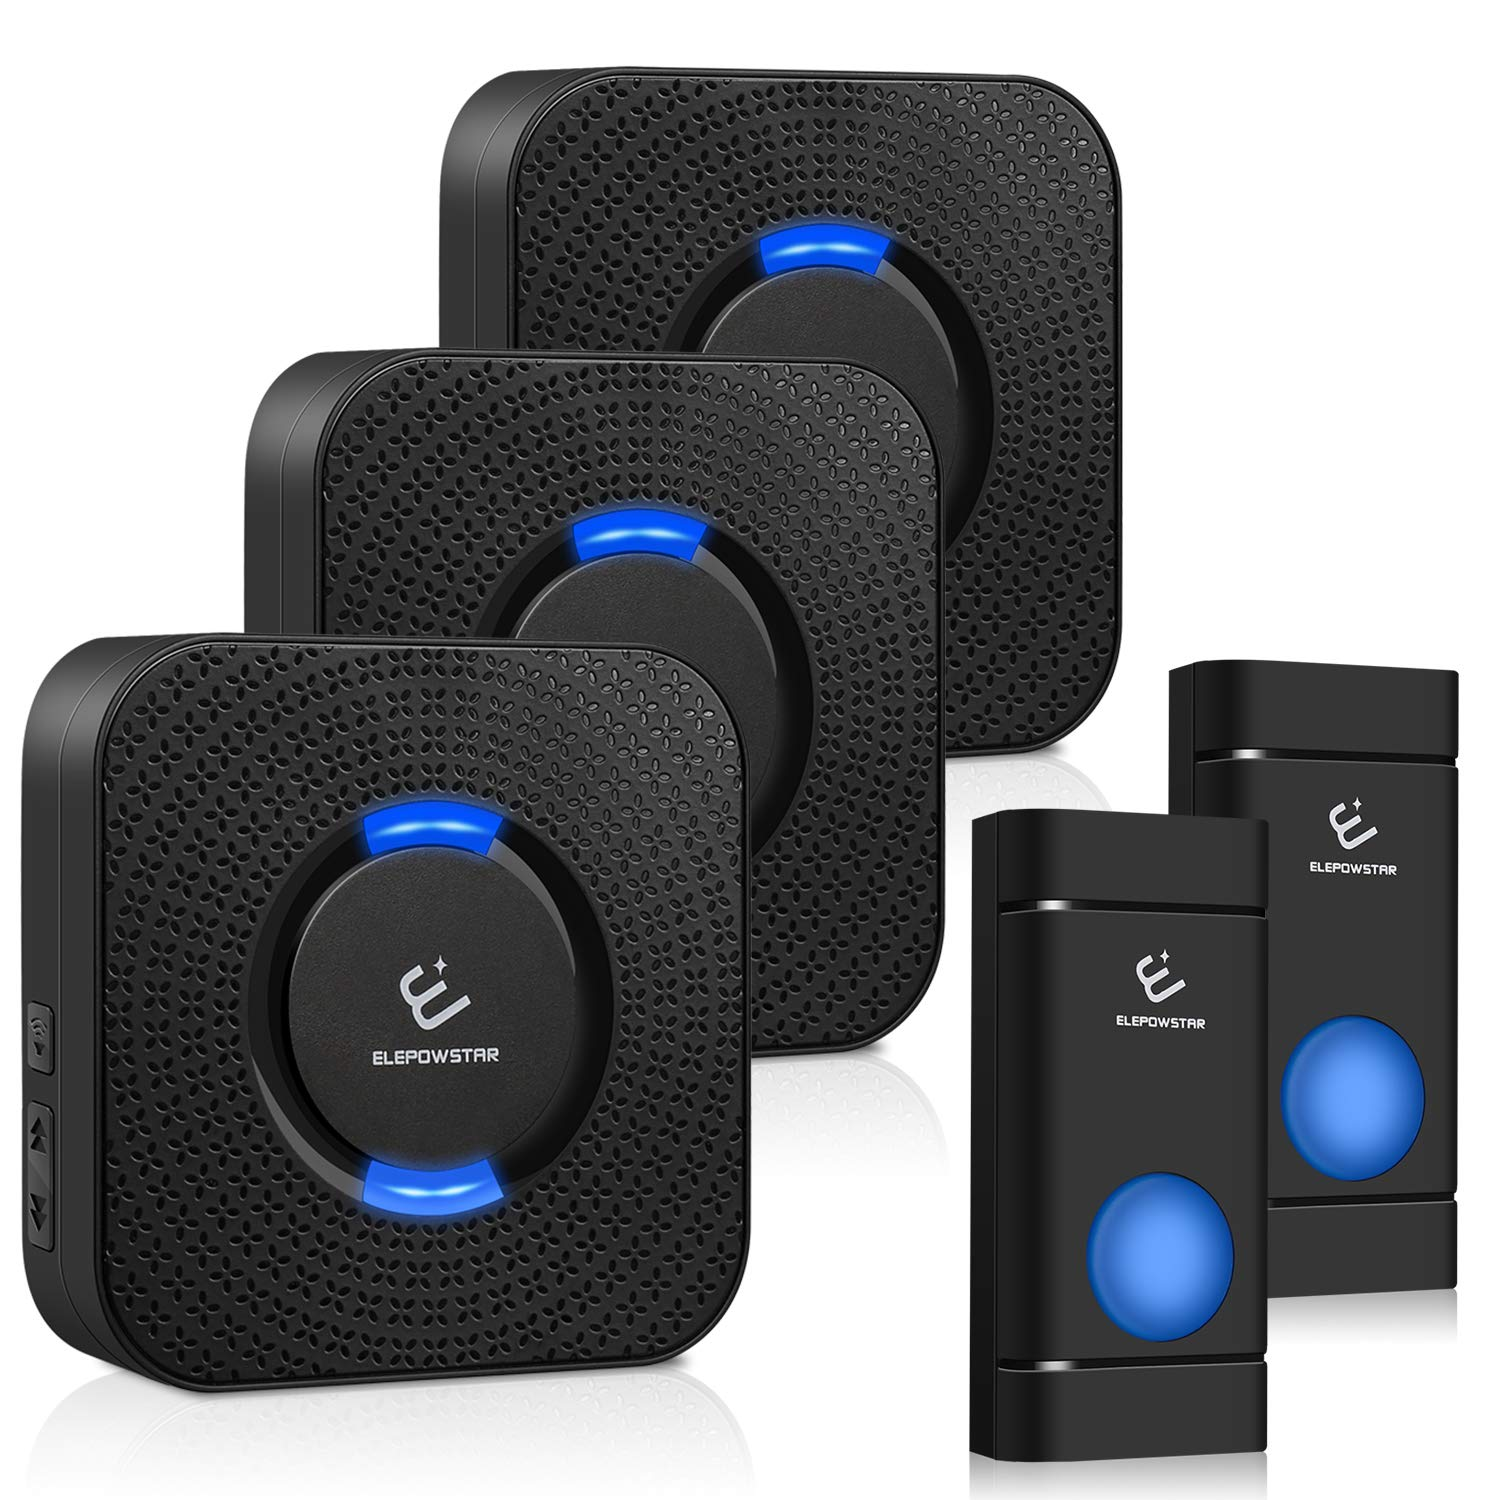 Very nice wireless doorbell kit